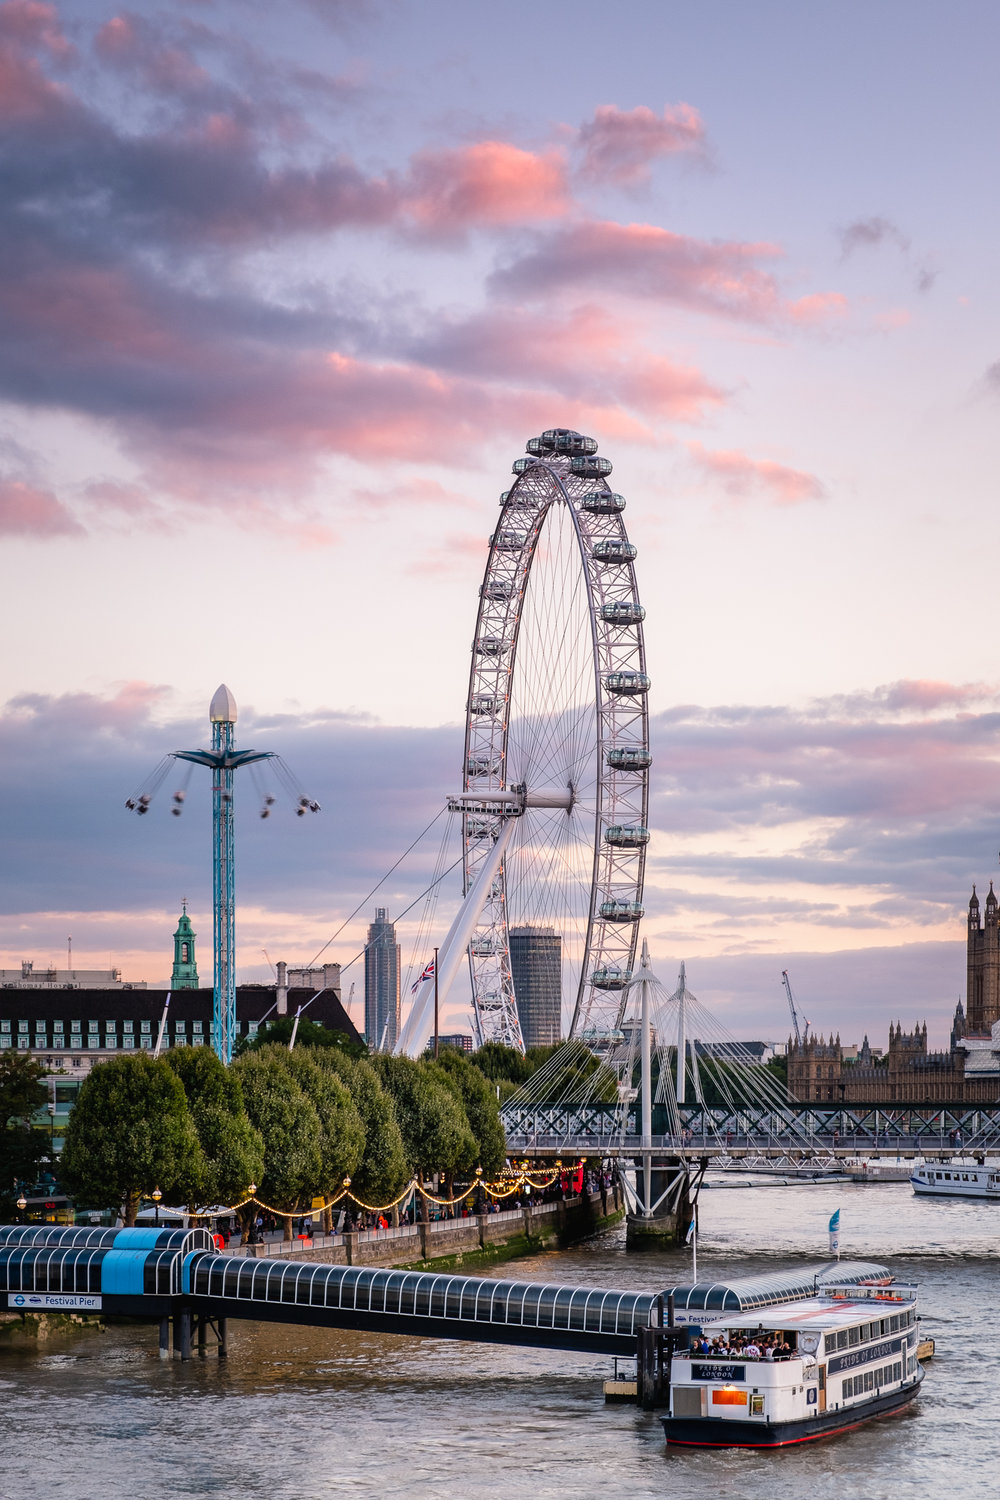 180913 - London - Sunset - London Eye 004.jpg